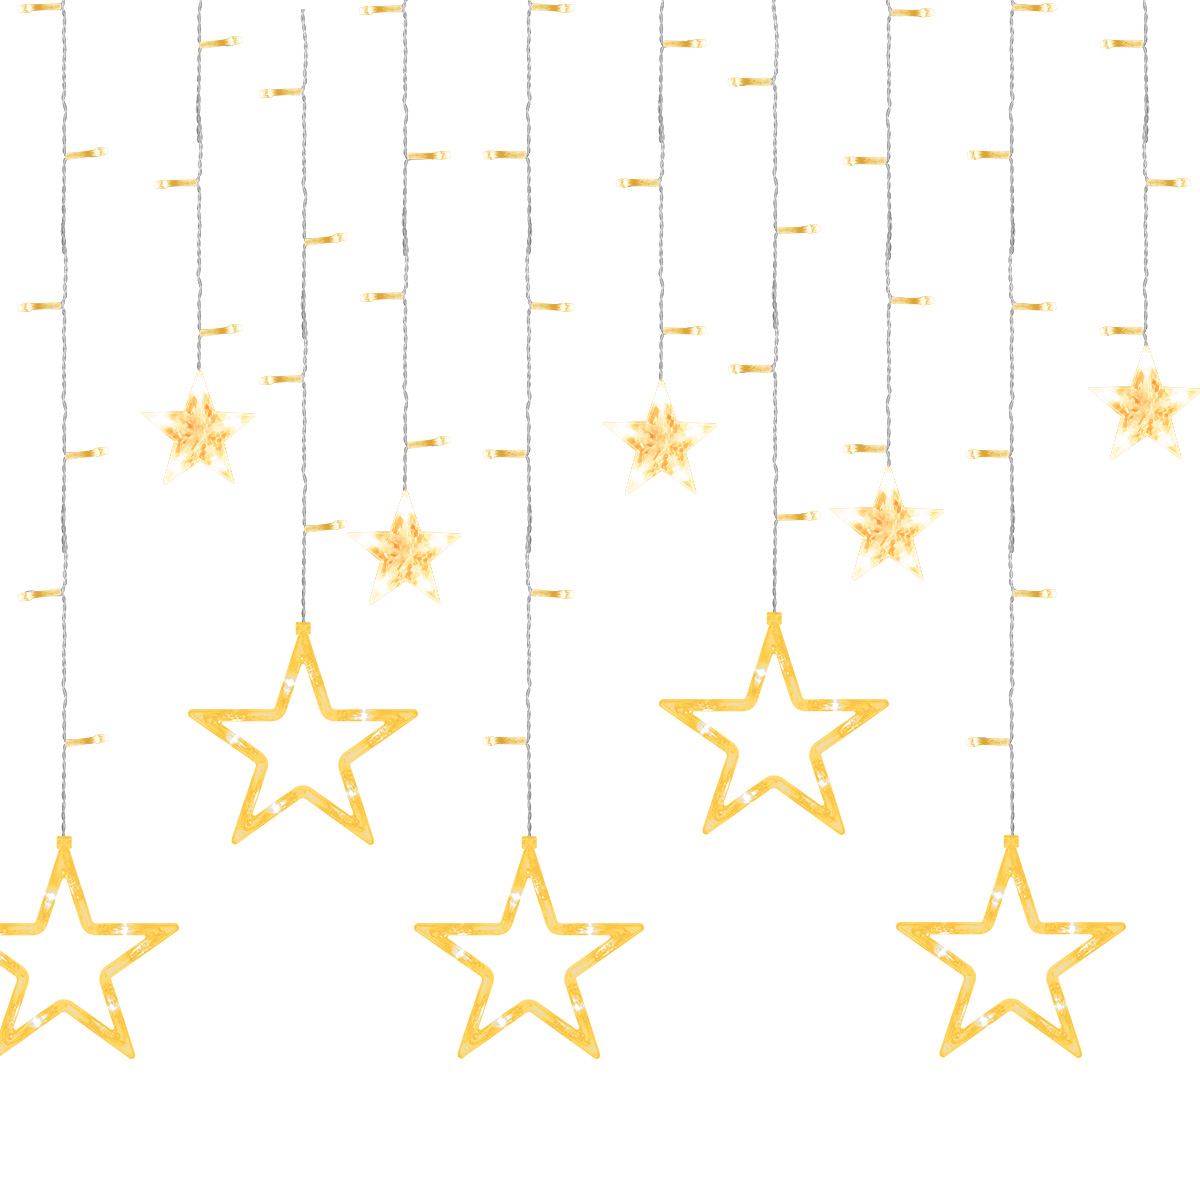 GDEALER Twinkle Star 12 Stars 138 LED Curtain String Lights, Window Curtain Lights Fairy Lights for Wedding Party Bedroom,Hanging Lights Twinkle Lights Christmas Lights Wall Decor Warm White